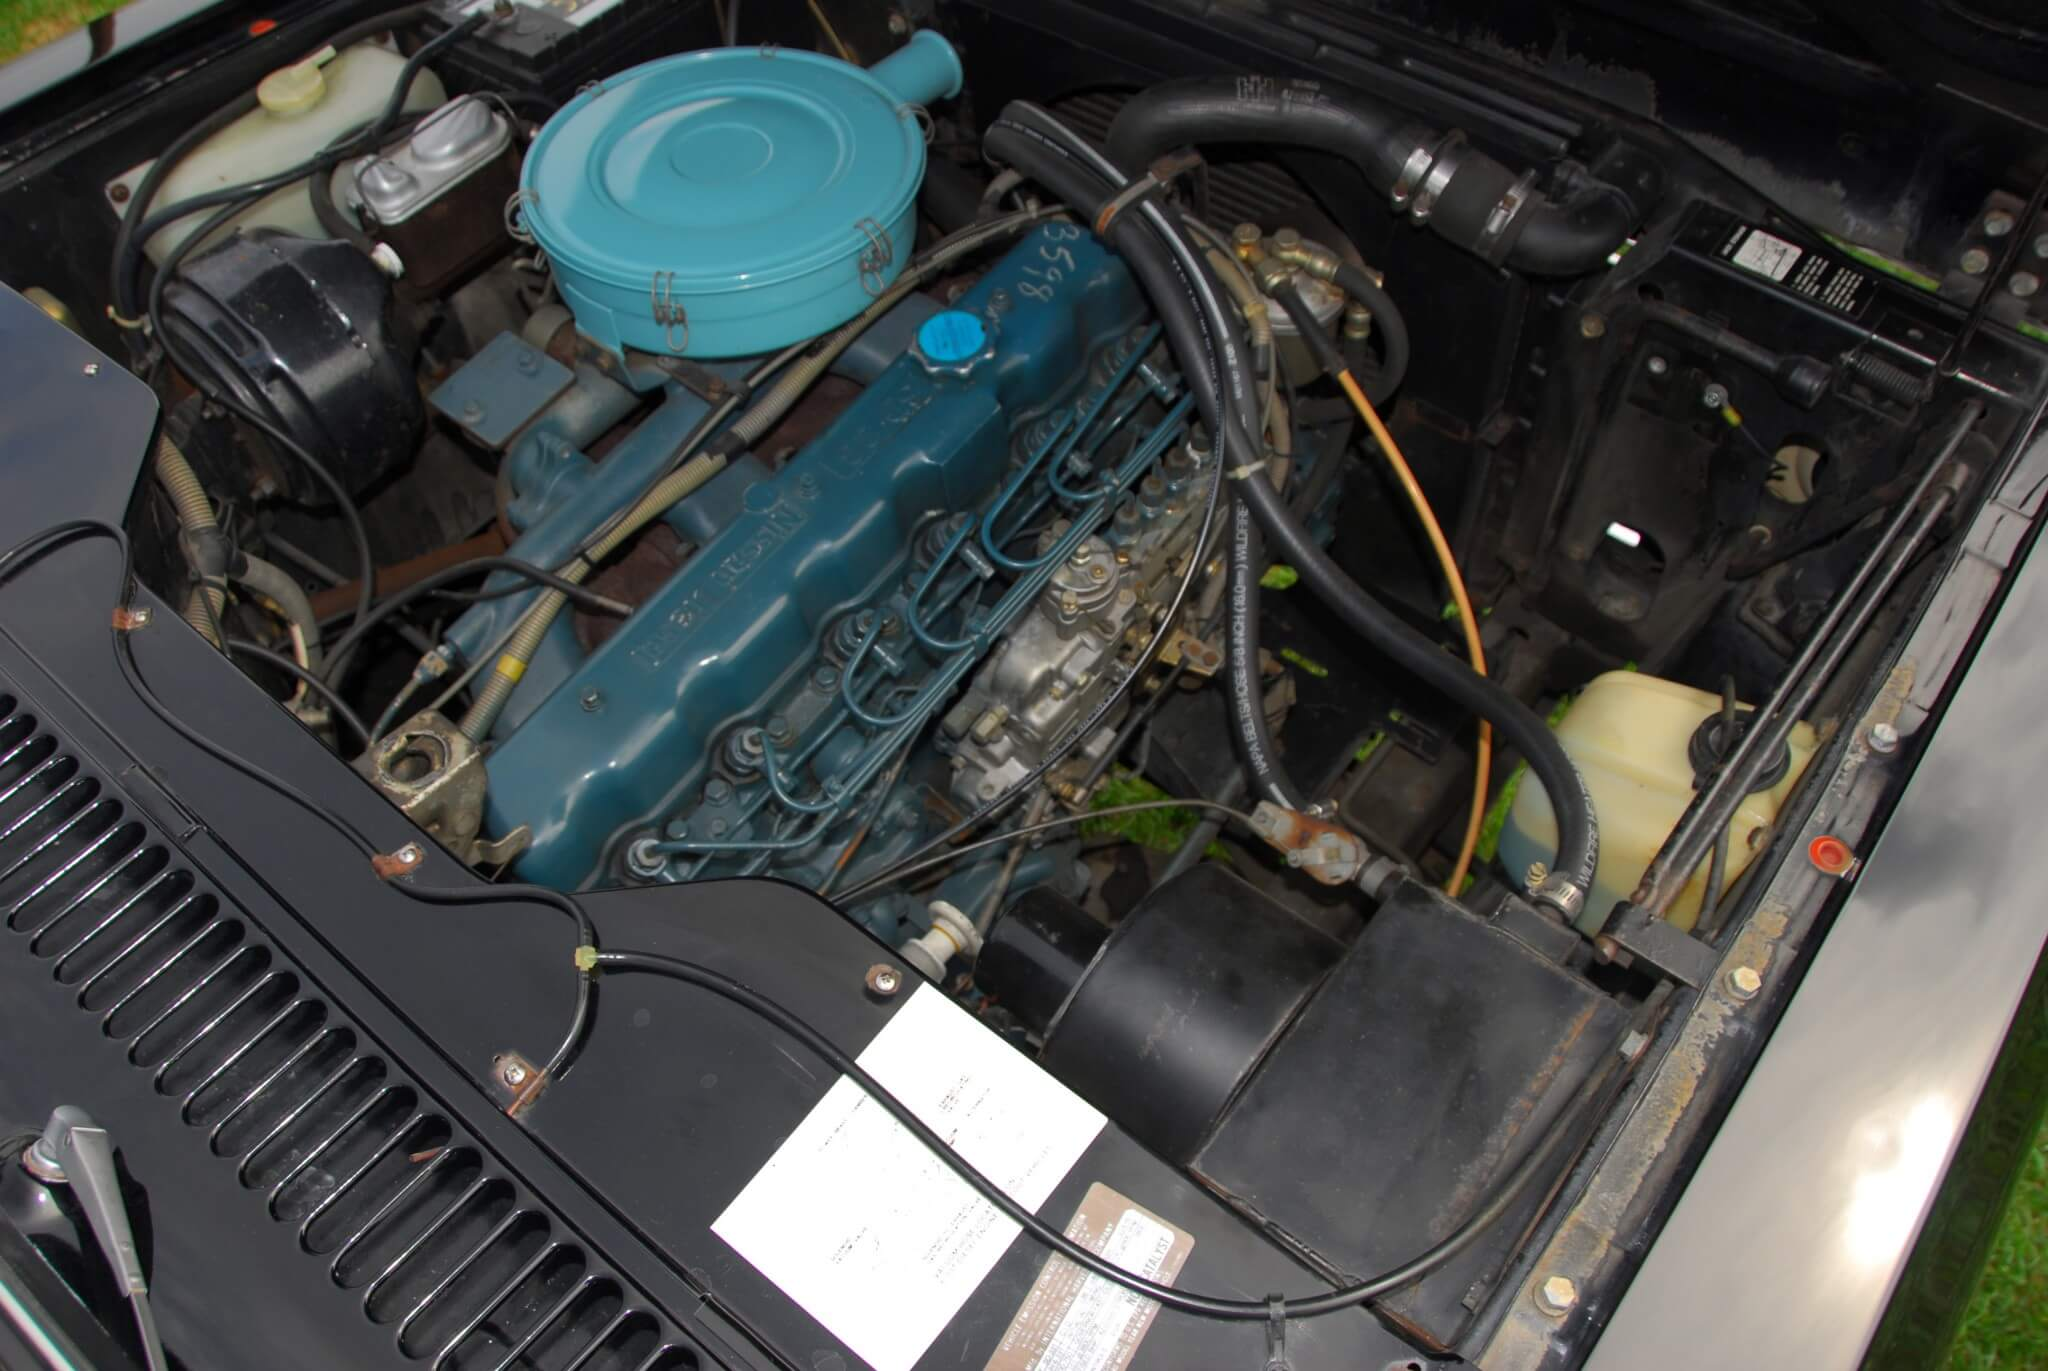 This unaltered SD33T in installed in a 1980 Scout. The engine fits well under the hood and weighs about the same as IH's smaller V-8s. Dimensions were similar to the AMC-sourced 232 and 258 inline sixes offered by IH in the past.